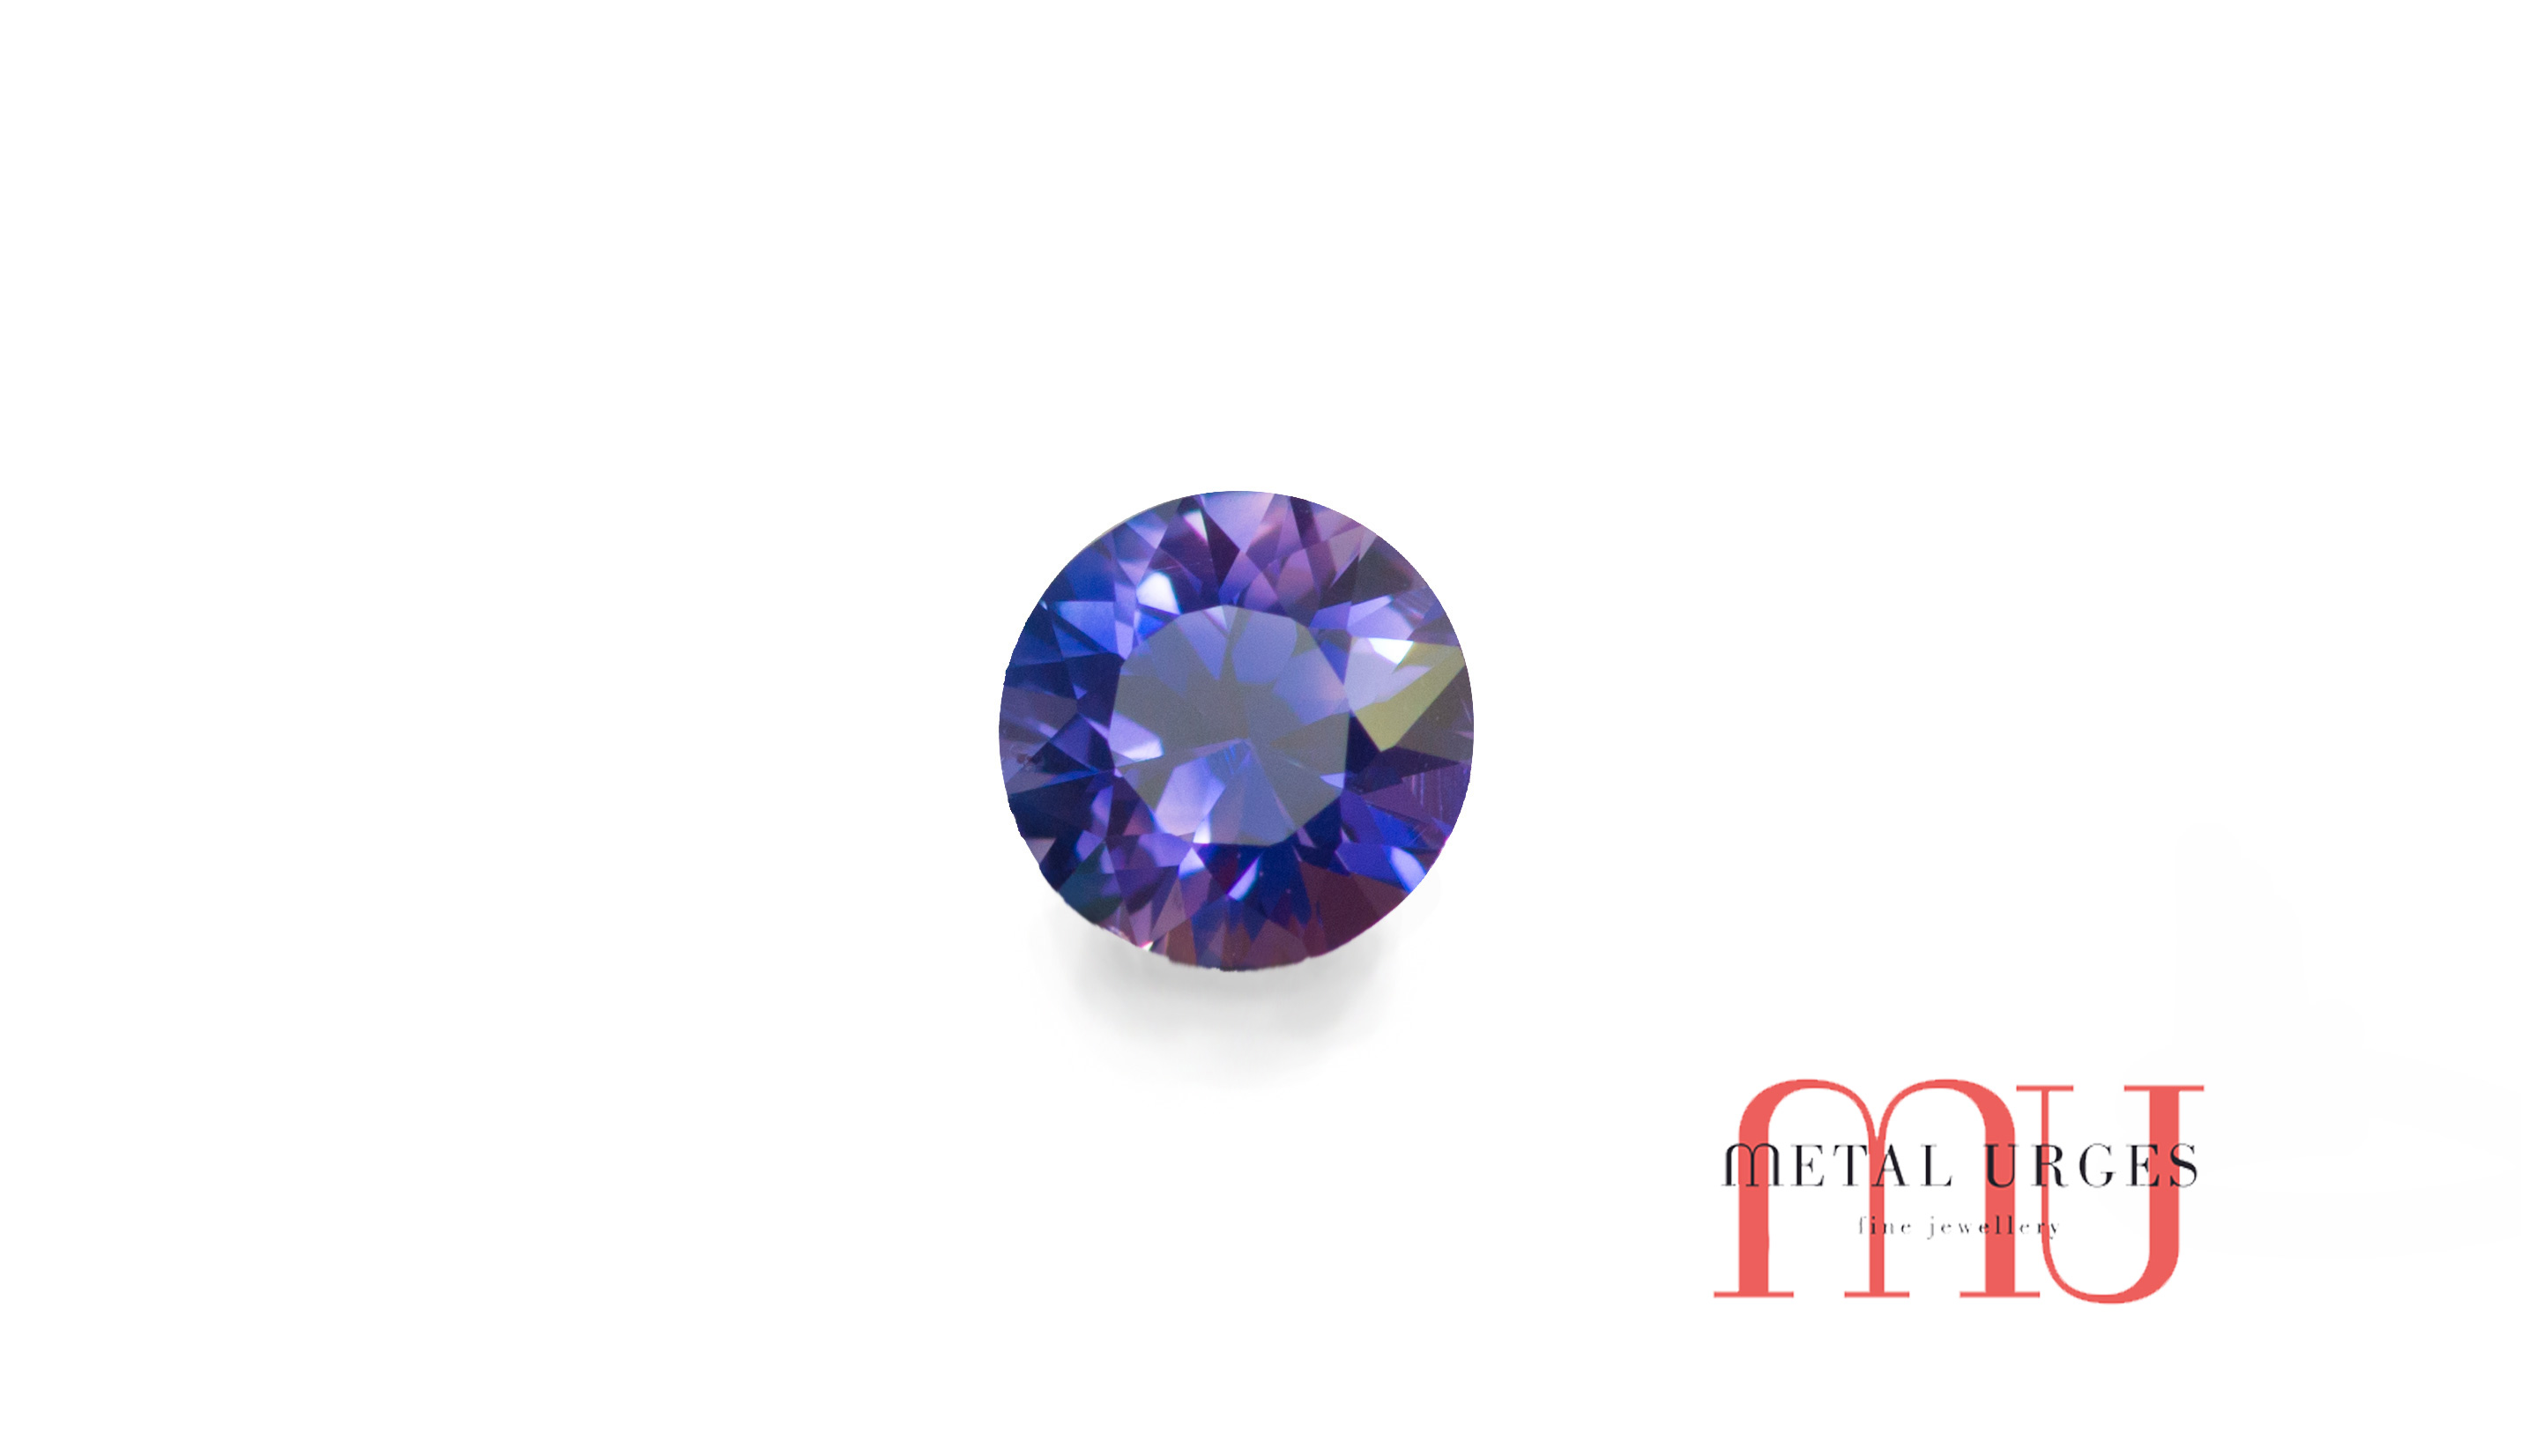 Sustainably sourced round cut purple sapphire